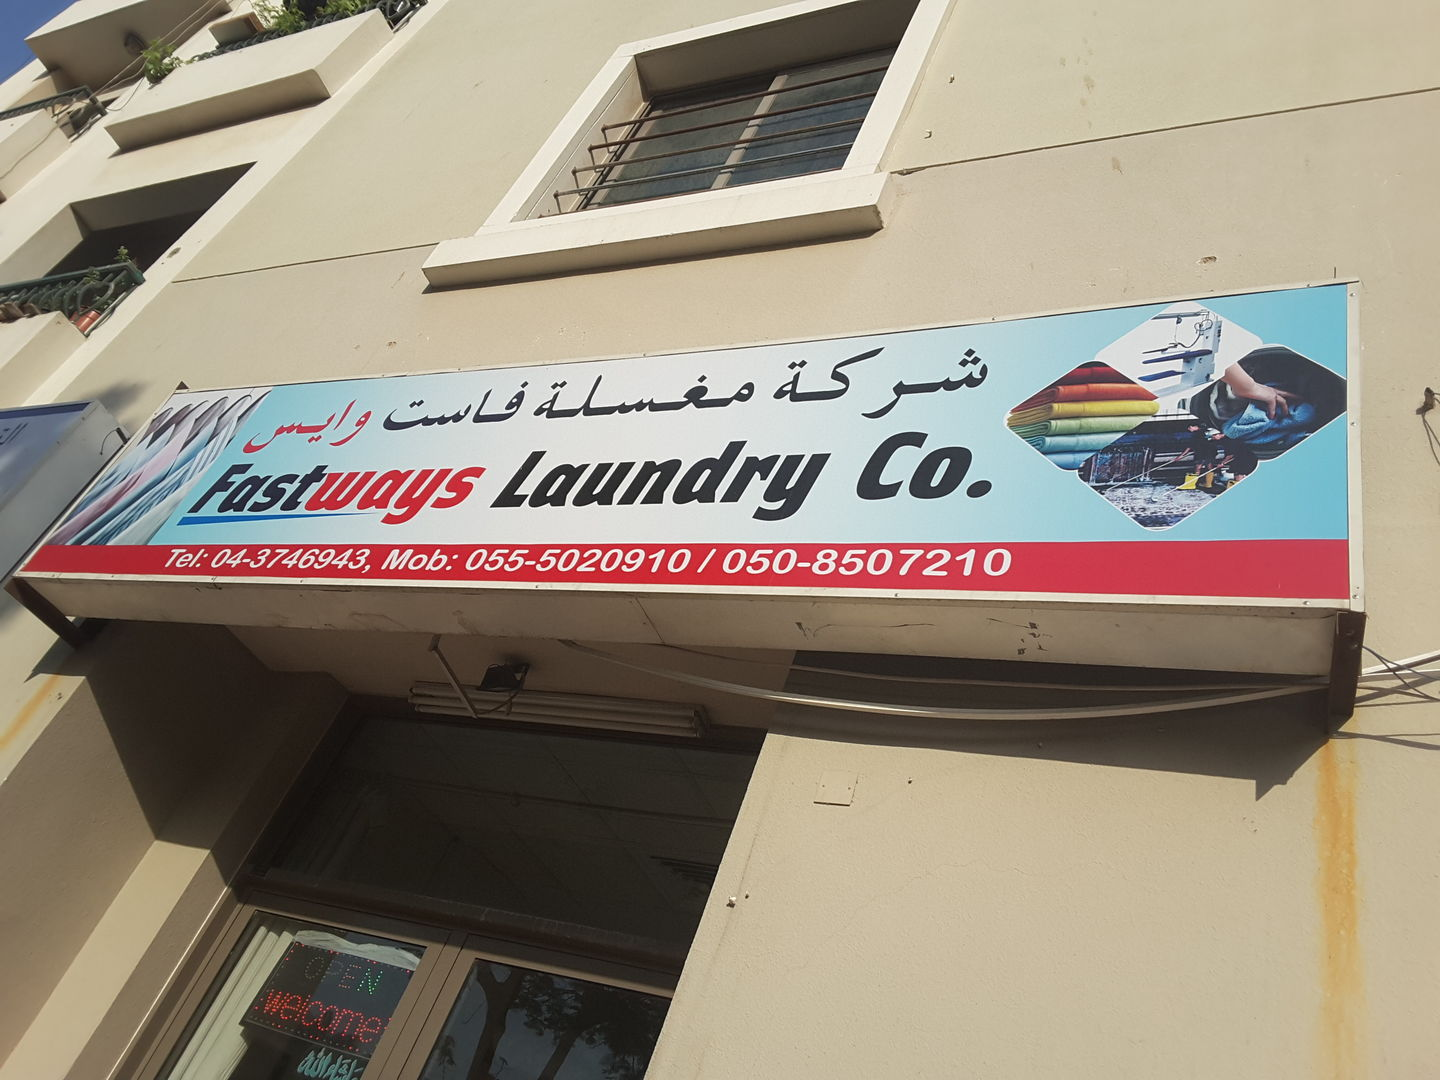 HiDubai-business-fast-ways-laundry-home-laundry-international-city-warsan-1-dubai-2